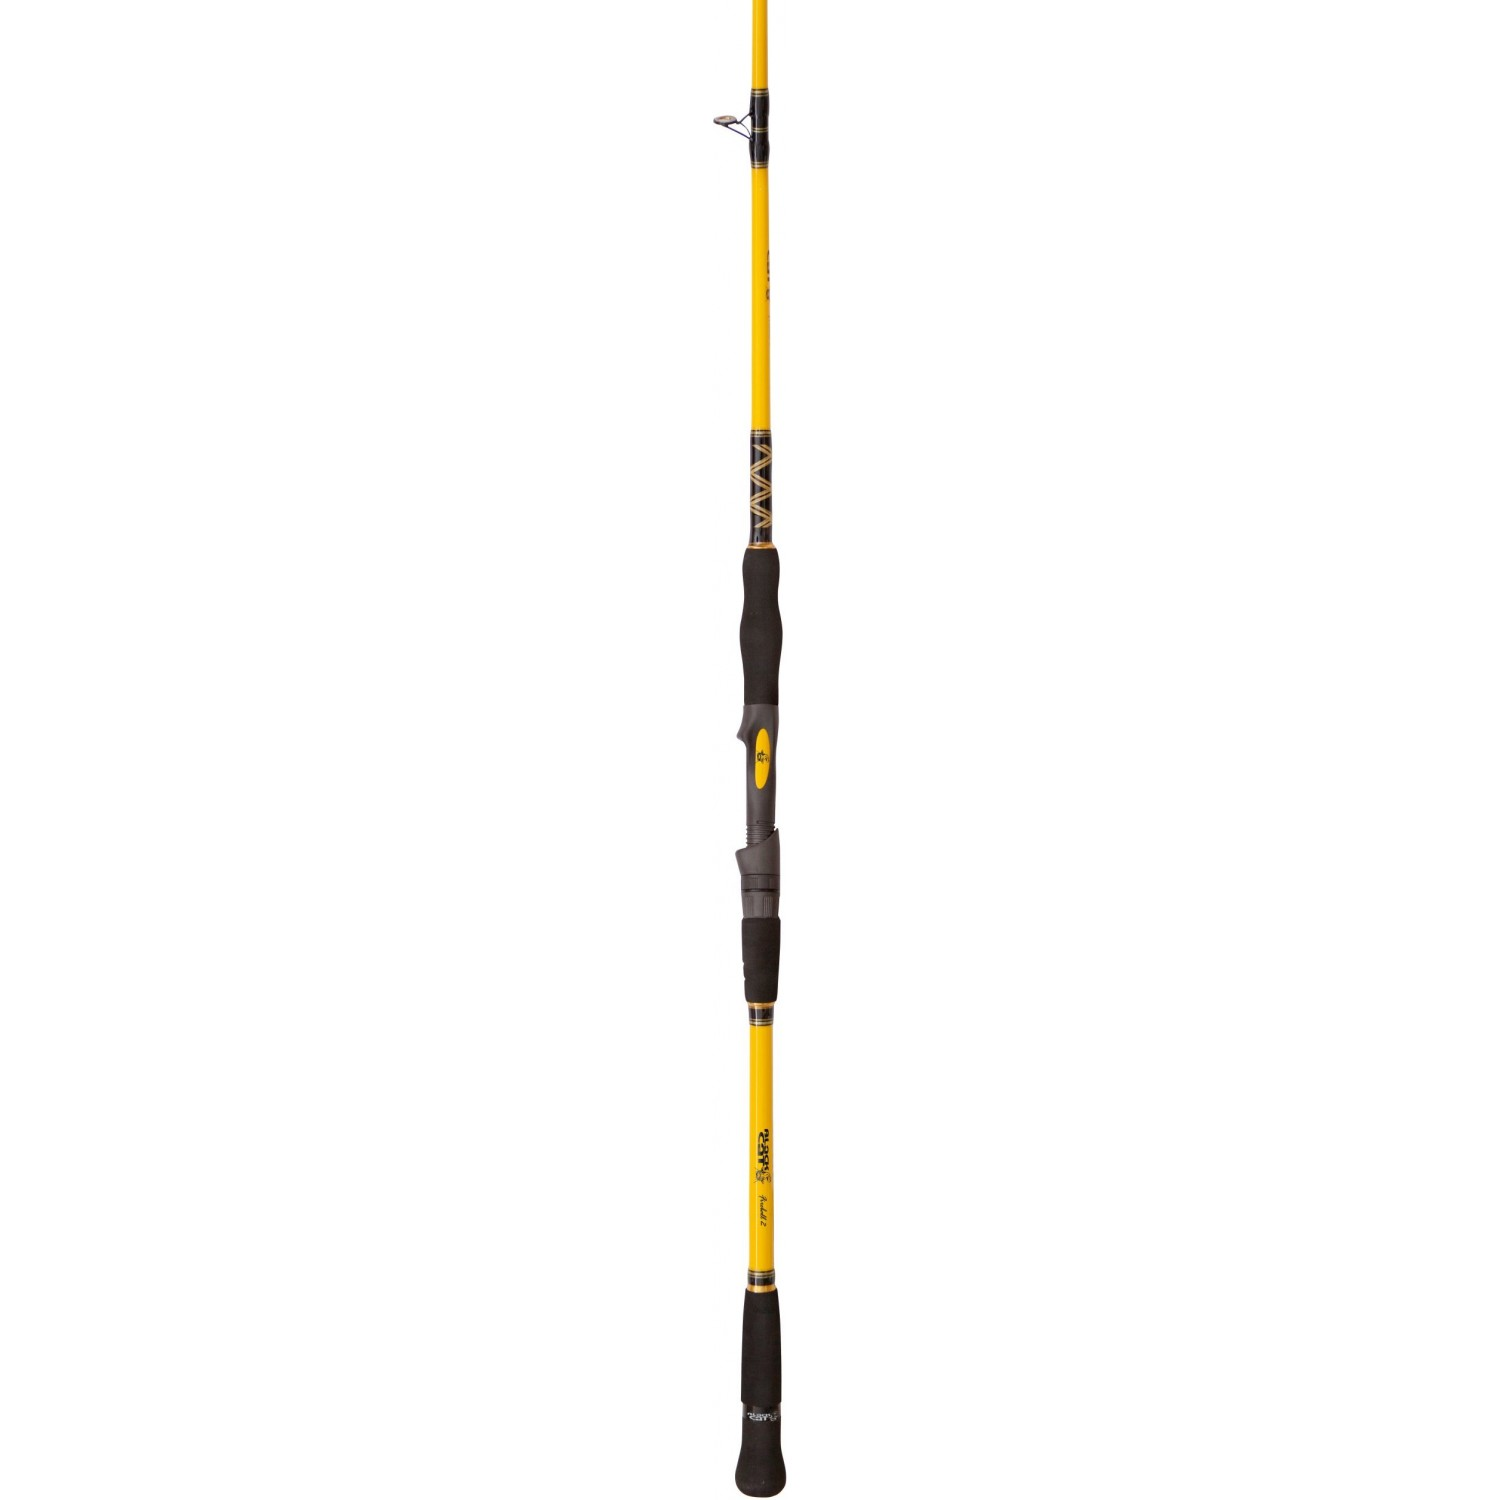 RHINO BLACK CAT Fireball II, 2.00m, 180-280g